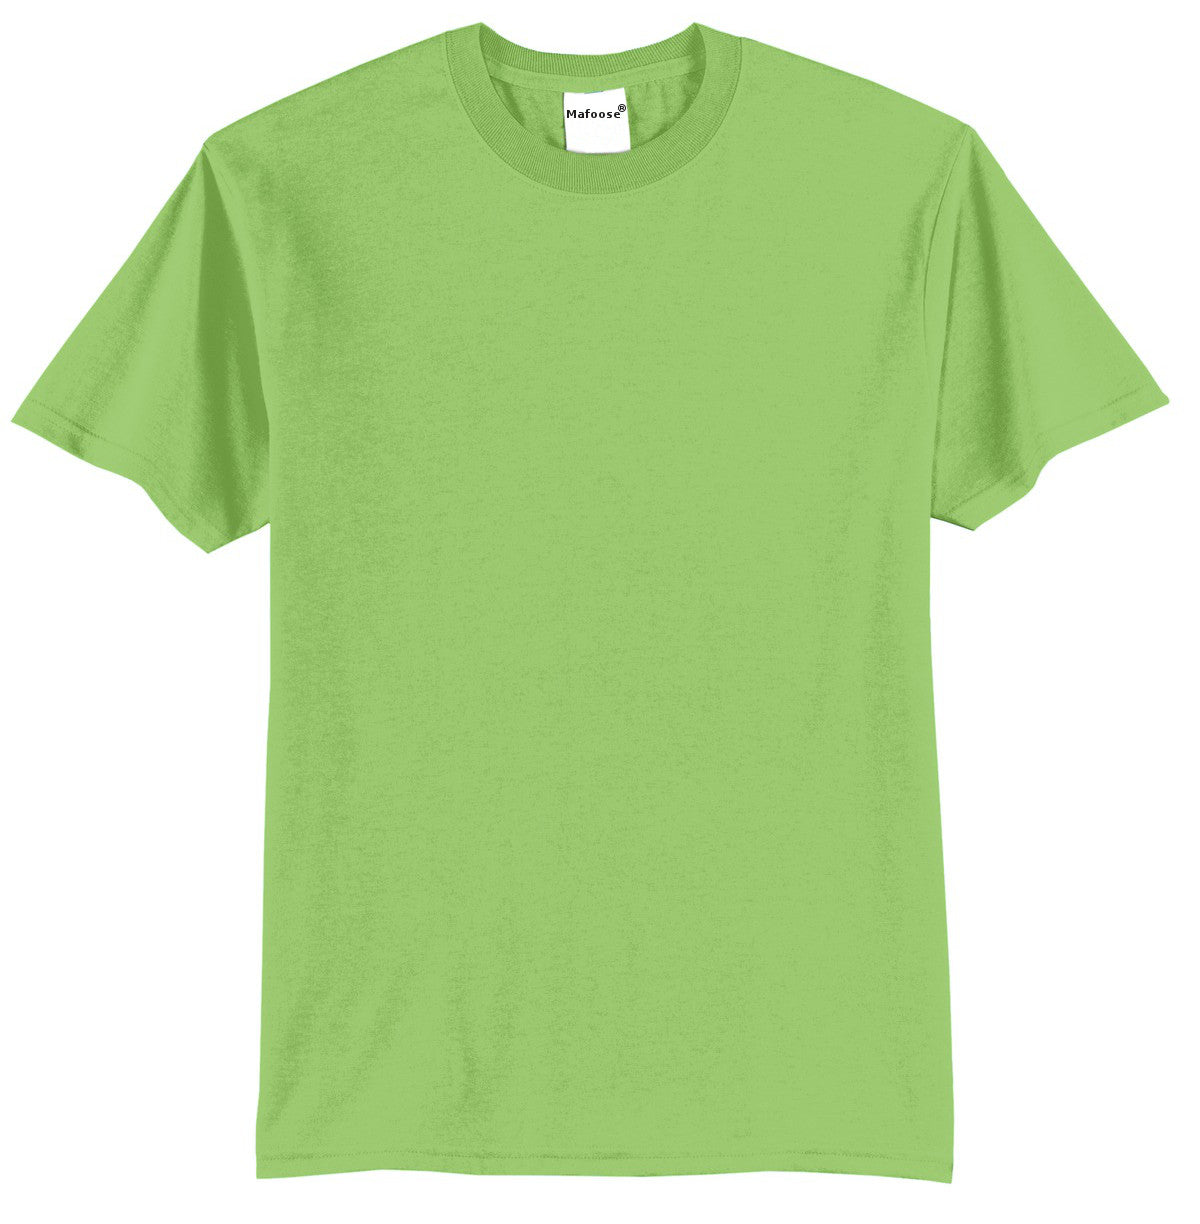 Mafoose Men's Core Blend Tee Shirt Lime